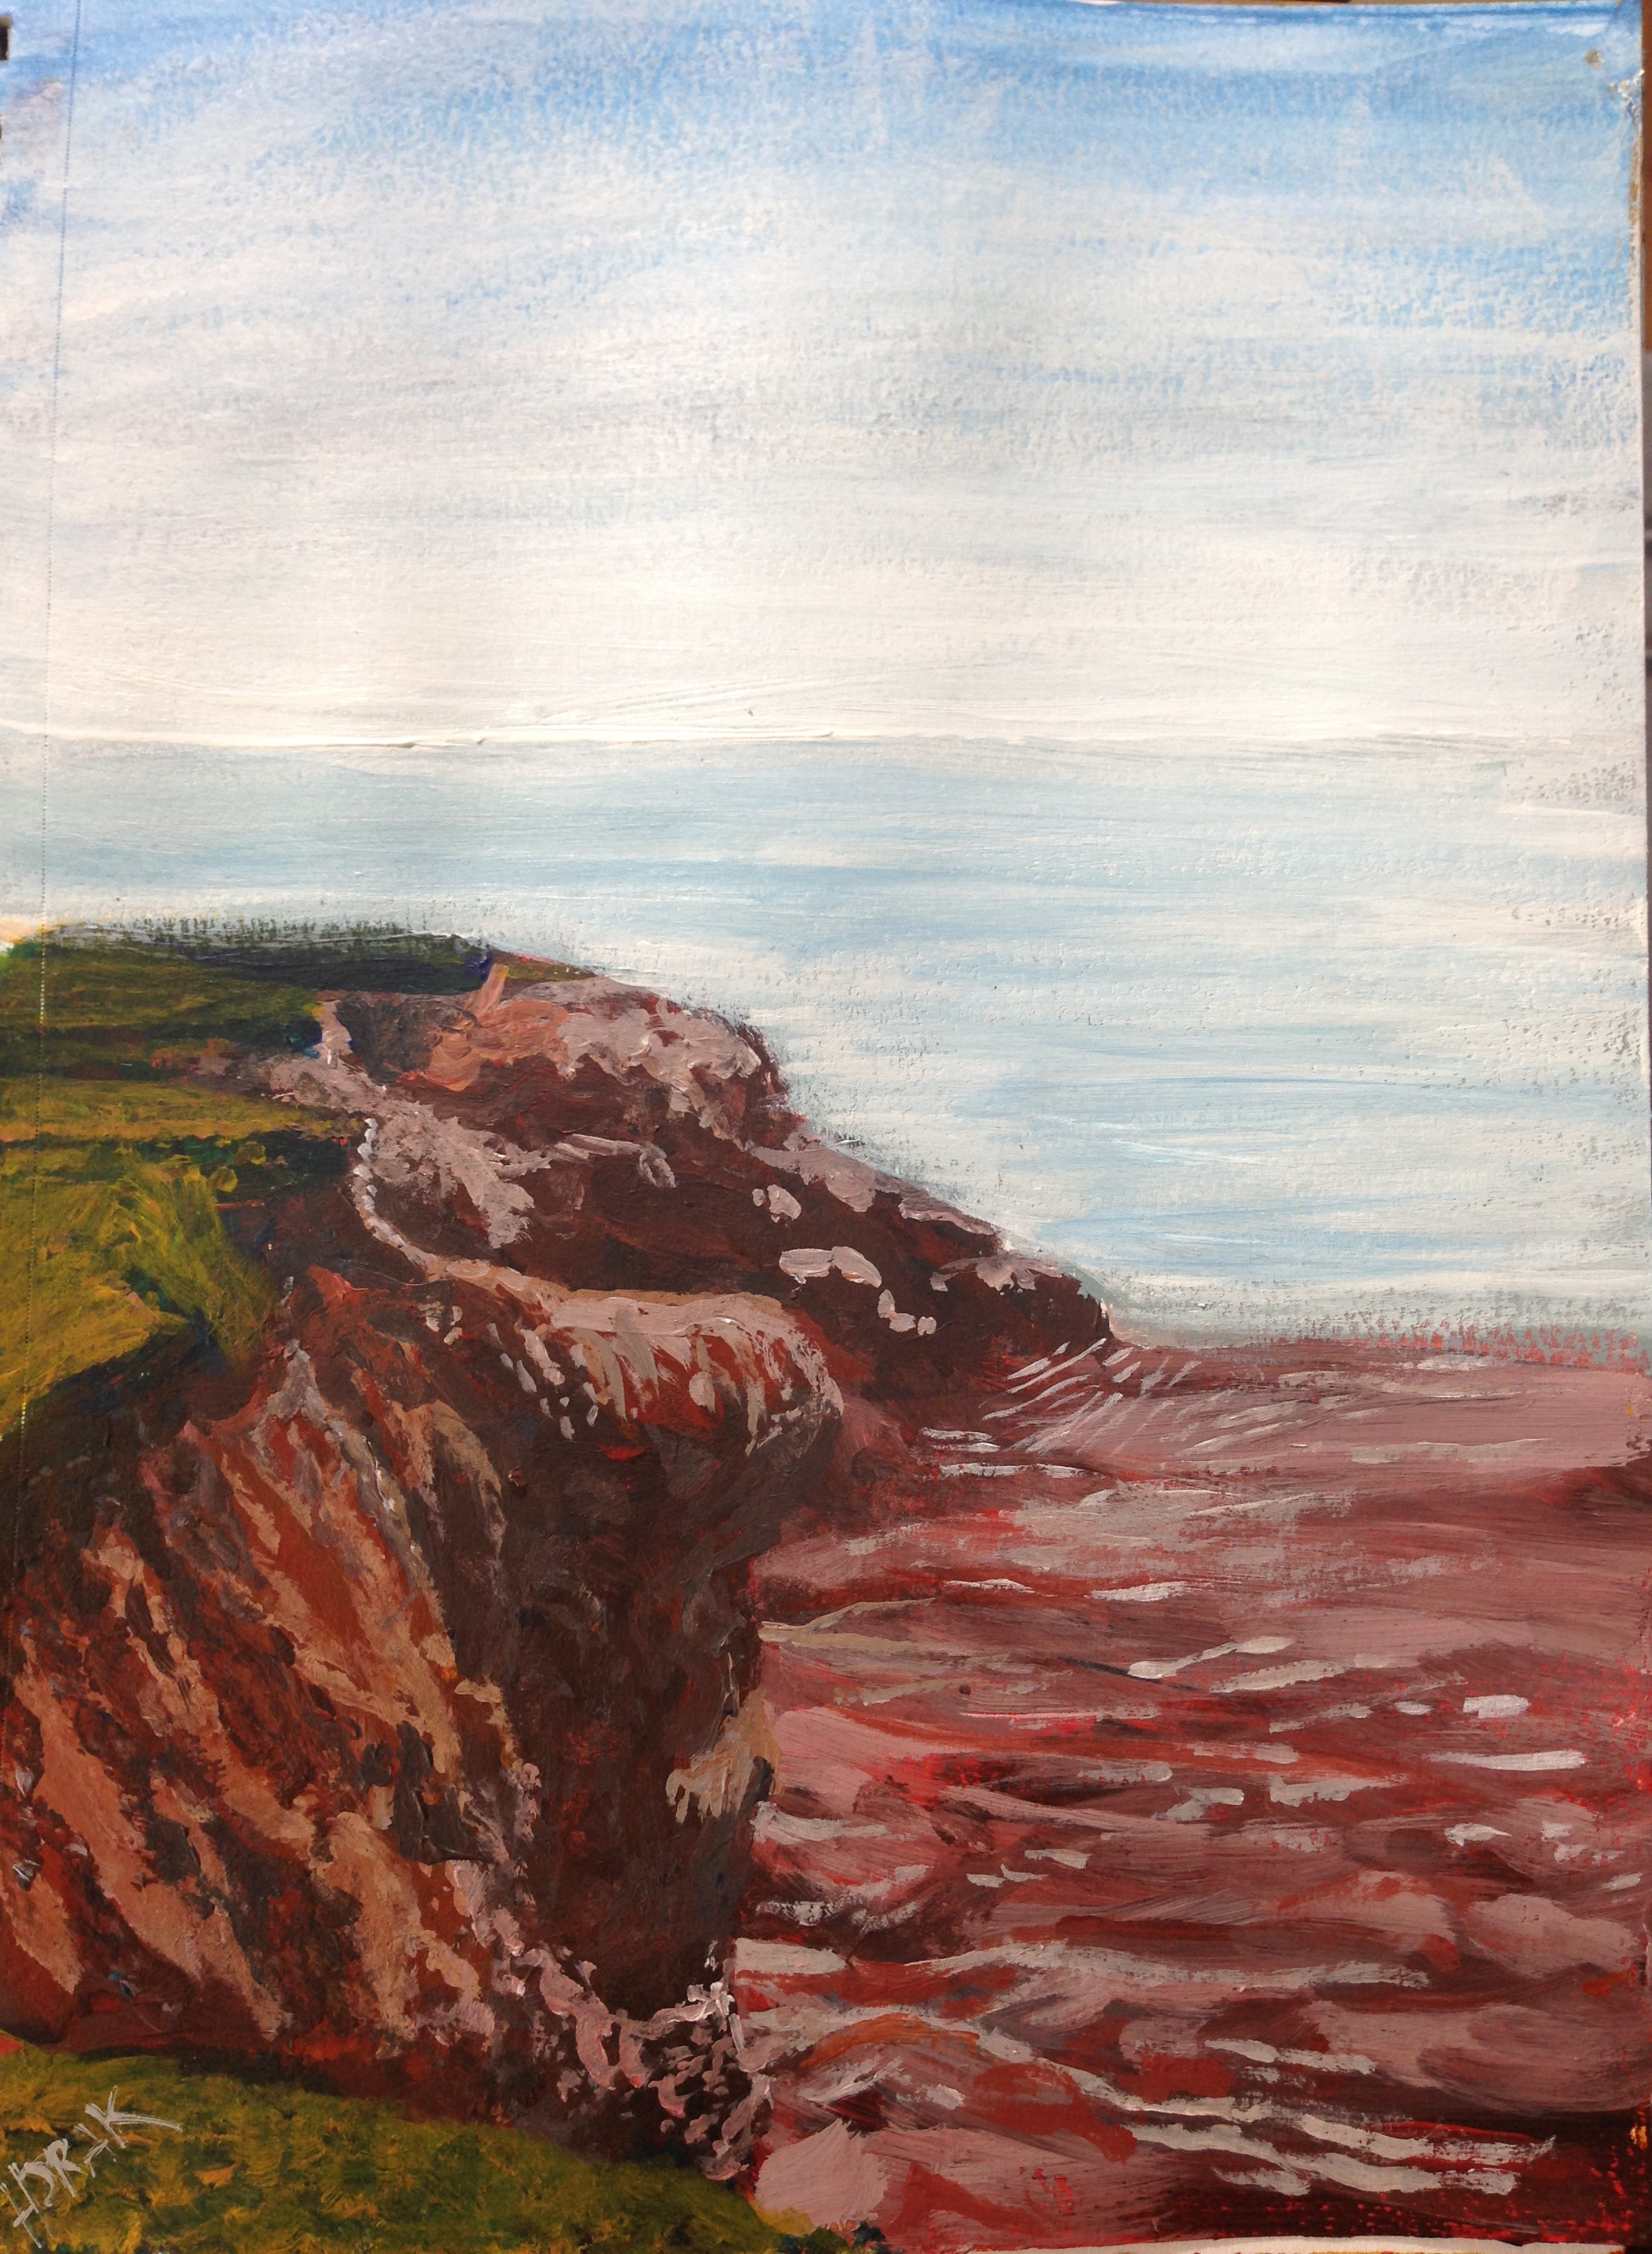 The Red Cliffs at Canoe Cove